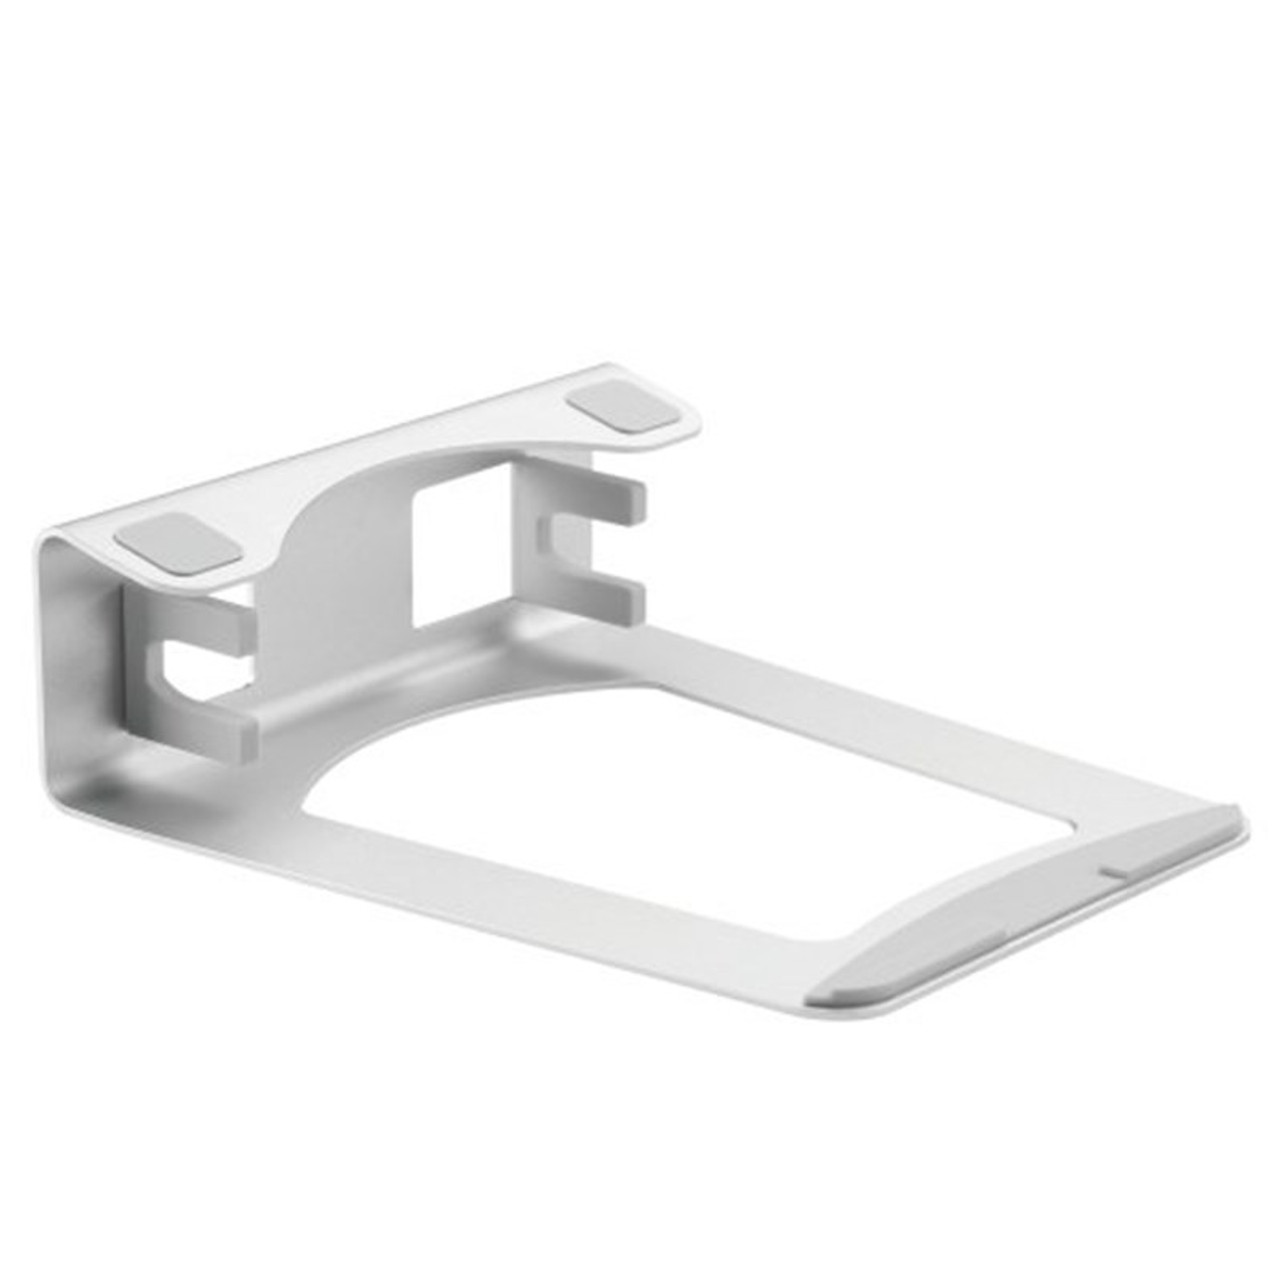 Image for Brateck 2 in 1 Adjustable Laptop Stand - Silver CX Computer Superstore